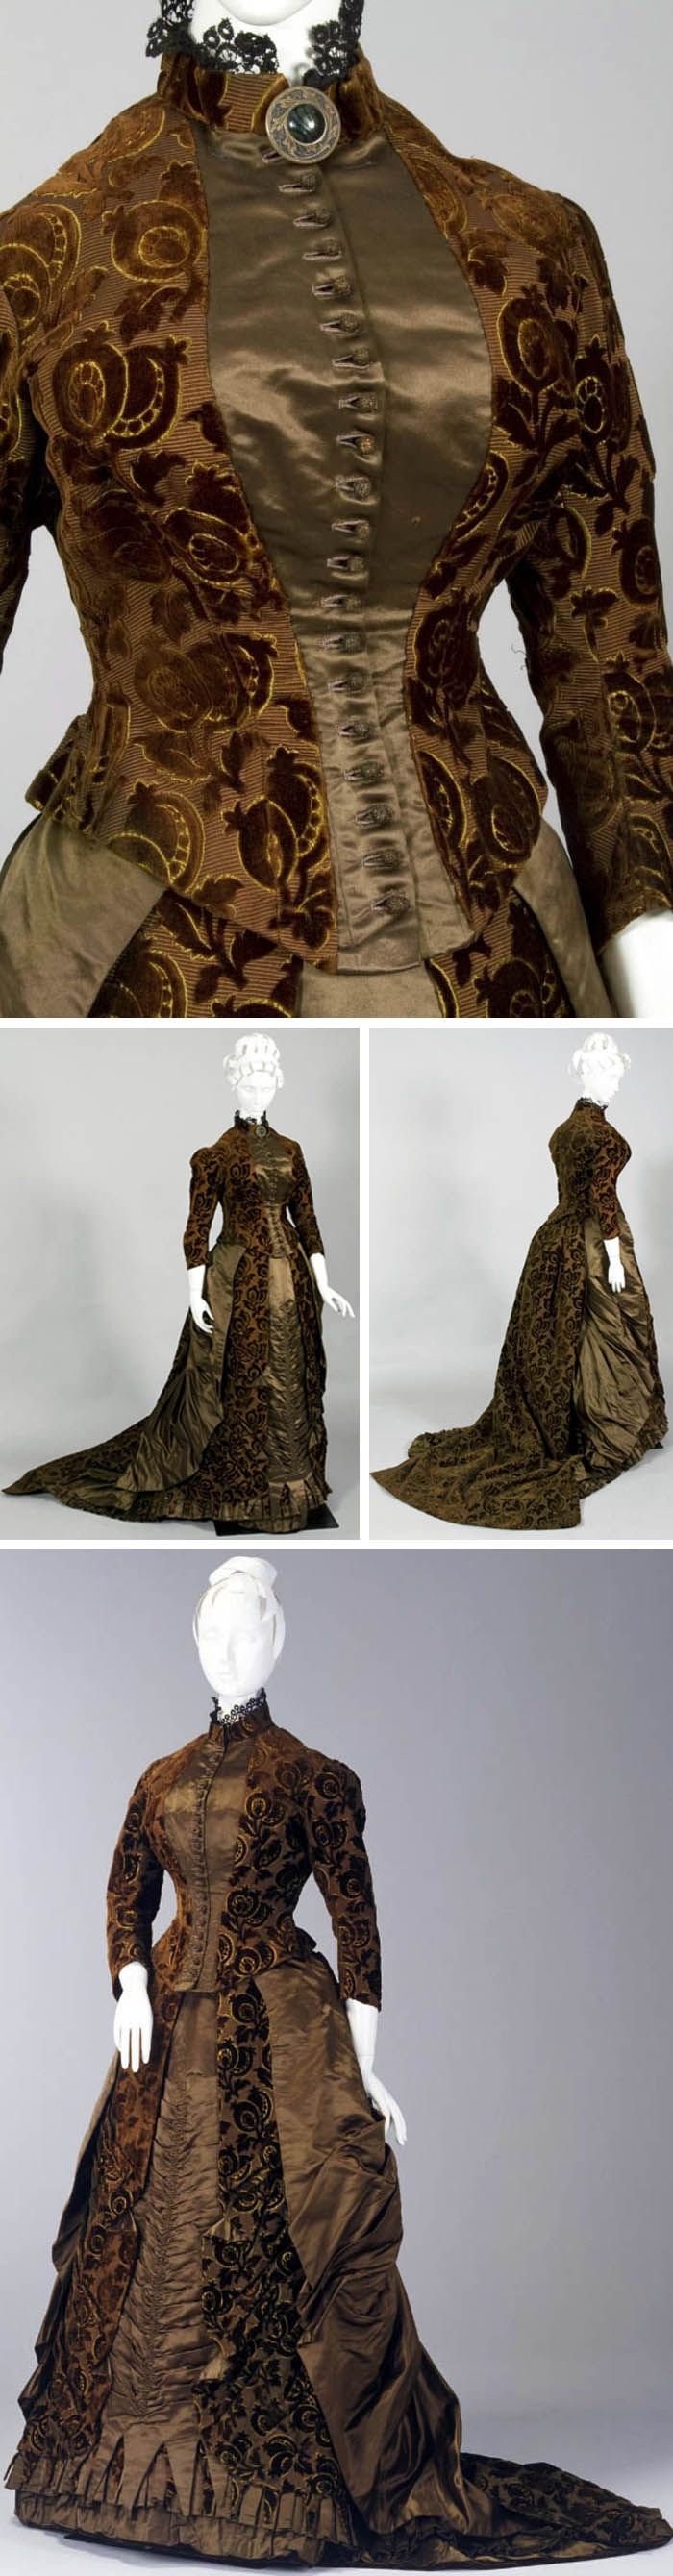 Day dress, England, ca. 1885. Olive green corded silk patterned in cut velvet & matching satin. Fitted bodice & bustled skirt with small train. Bodice of patterned cut velvet with central satin panel & center front opening of fabric-covered buttons. Skirt with alternating panels of satin and patterned cut velvet, with side satin panels draped towards the bustled back. Hem trimmed with pleated satin and elaborate layers of peaked fabric. Powerhouse Museum